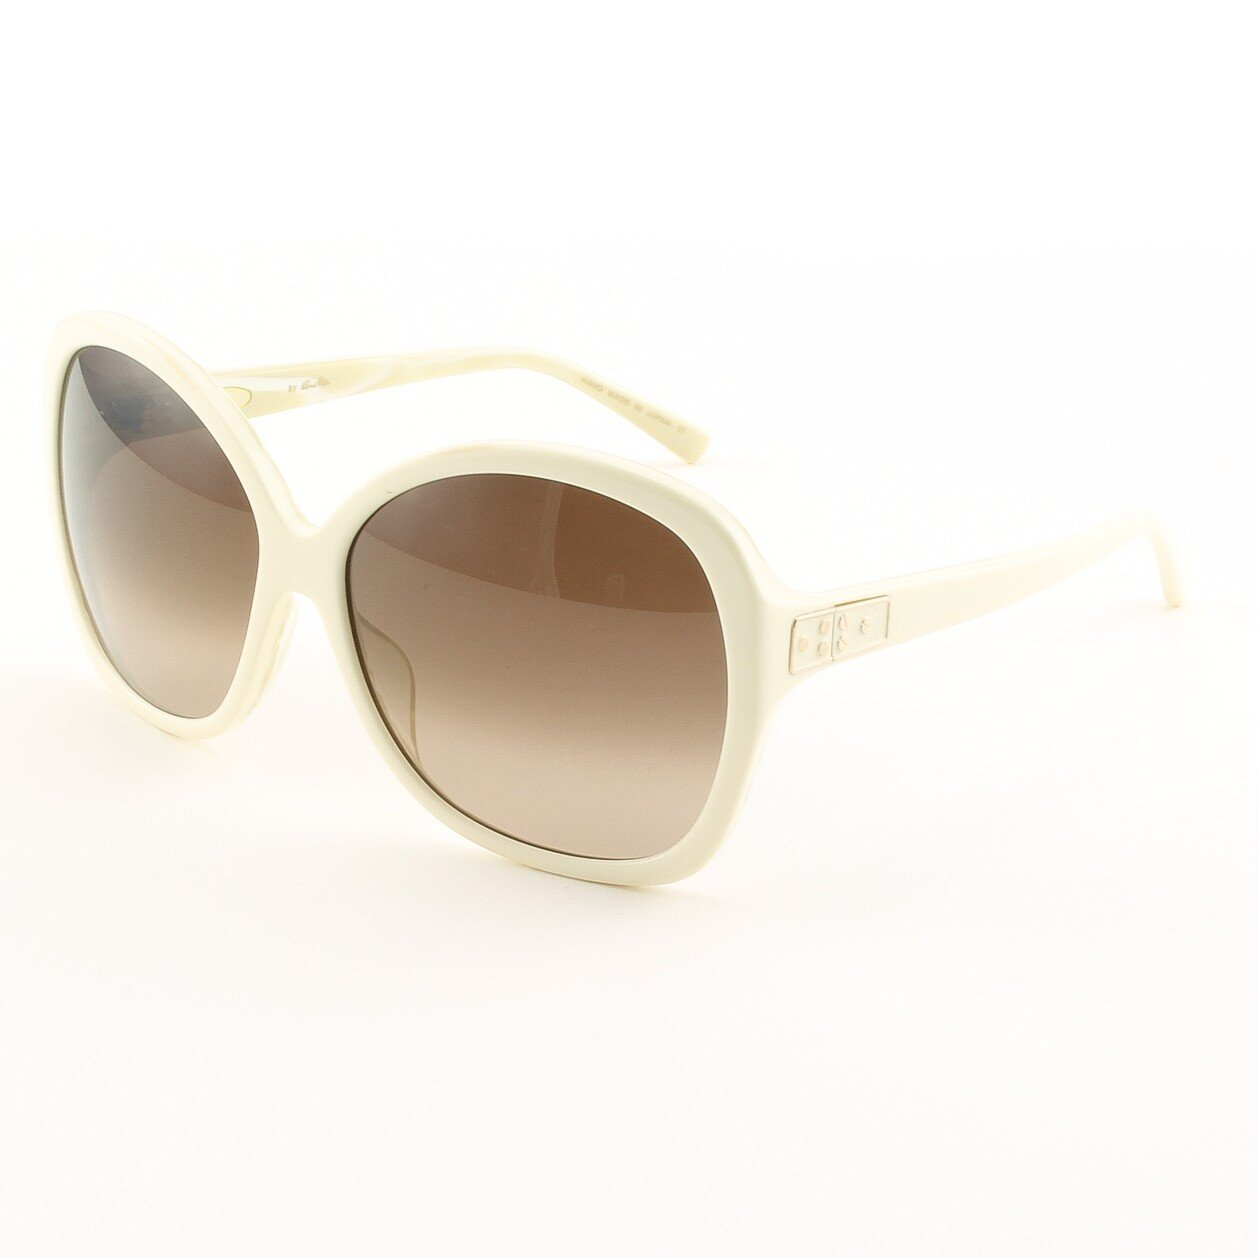 Blinde Now Where Were We Women's Sunglasses Col. Brown Zebra with Brown Gradient Lenses